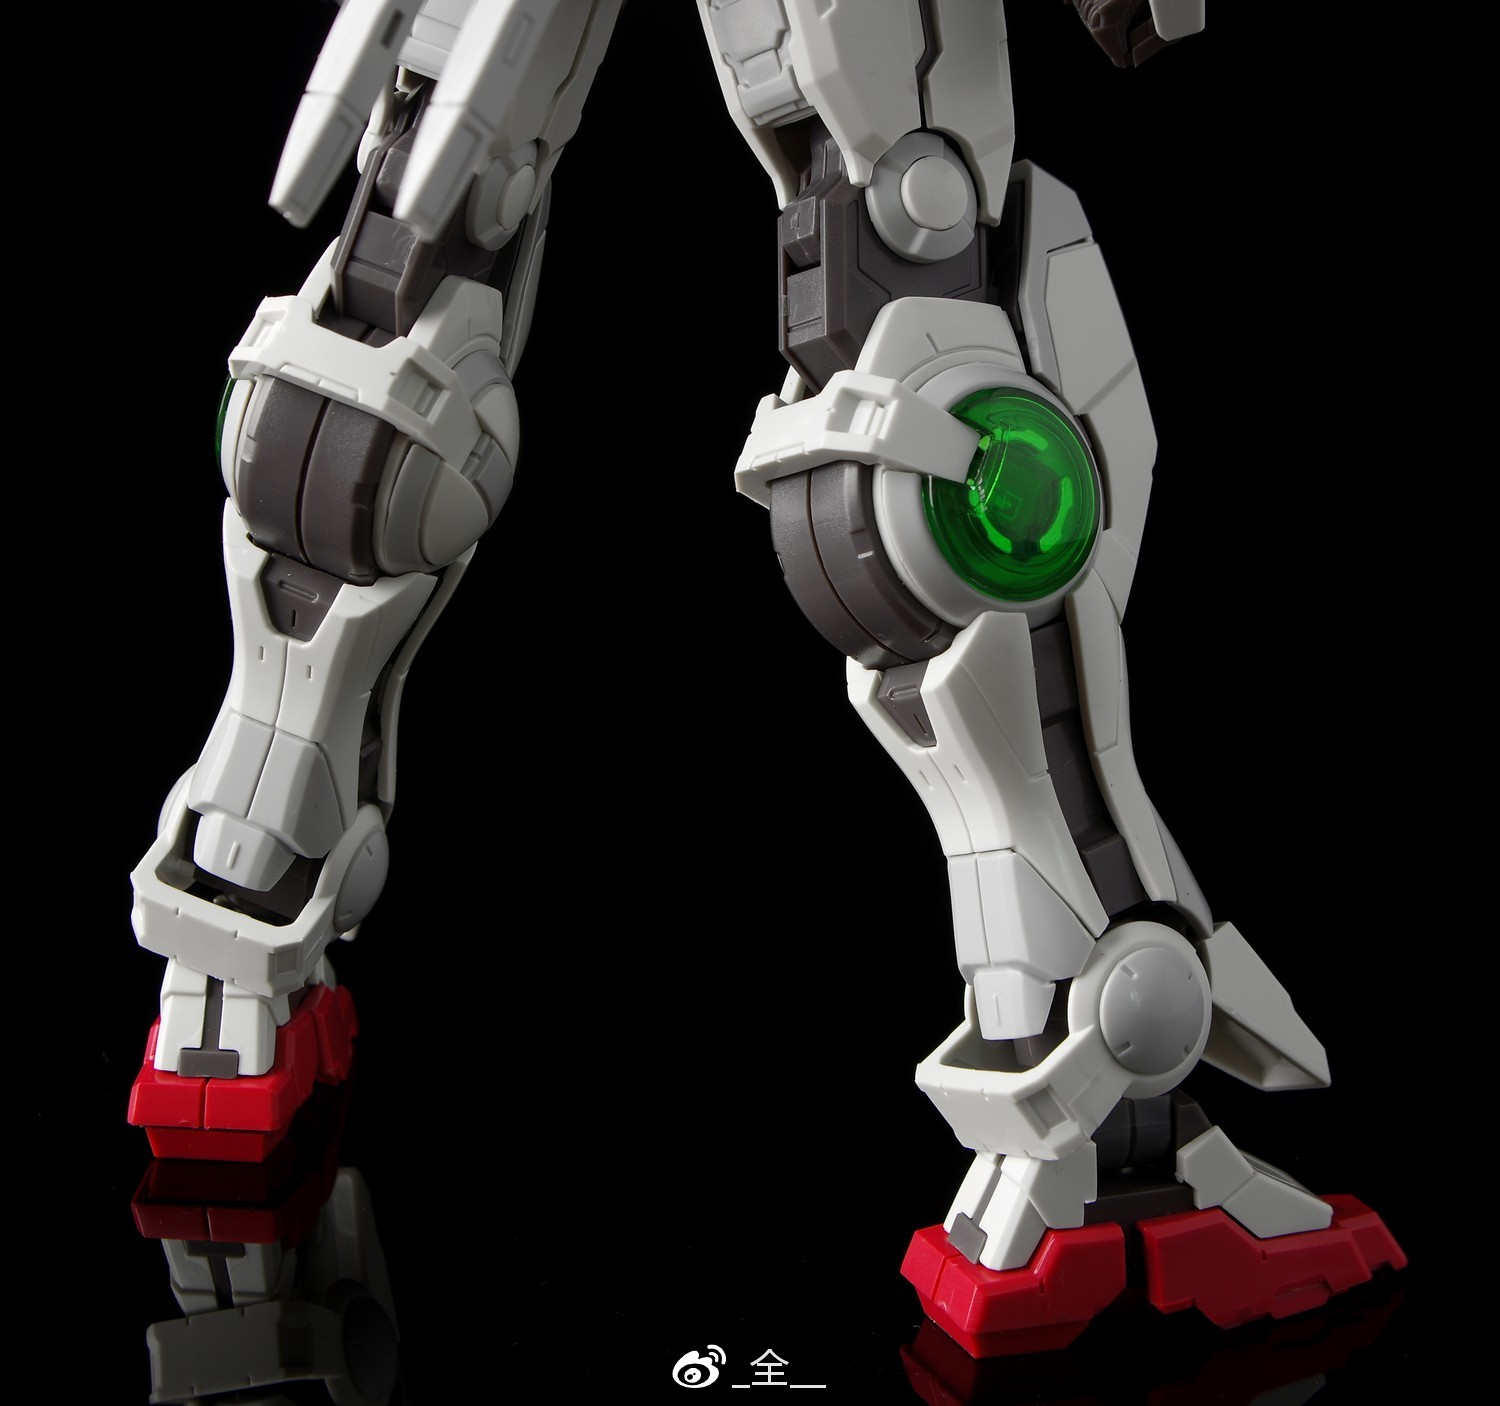 S269_mg_exia_led_hobby_star_inask_043.jpg